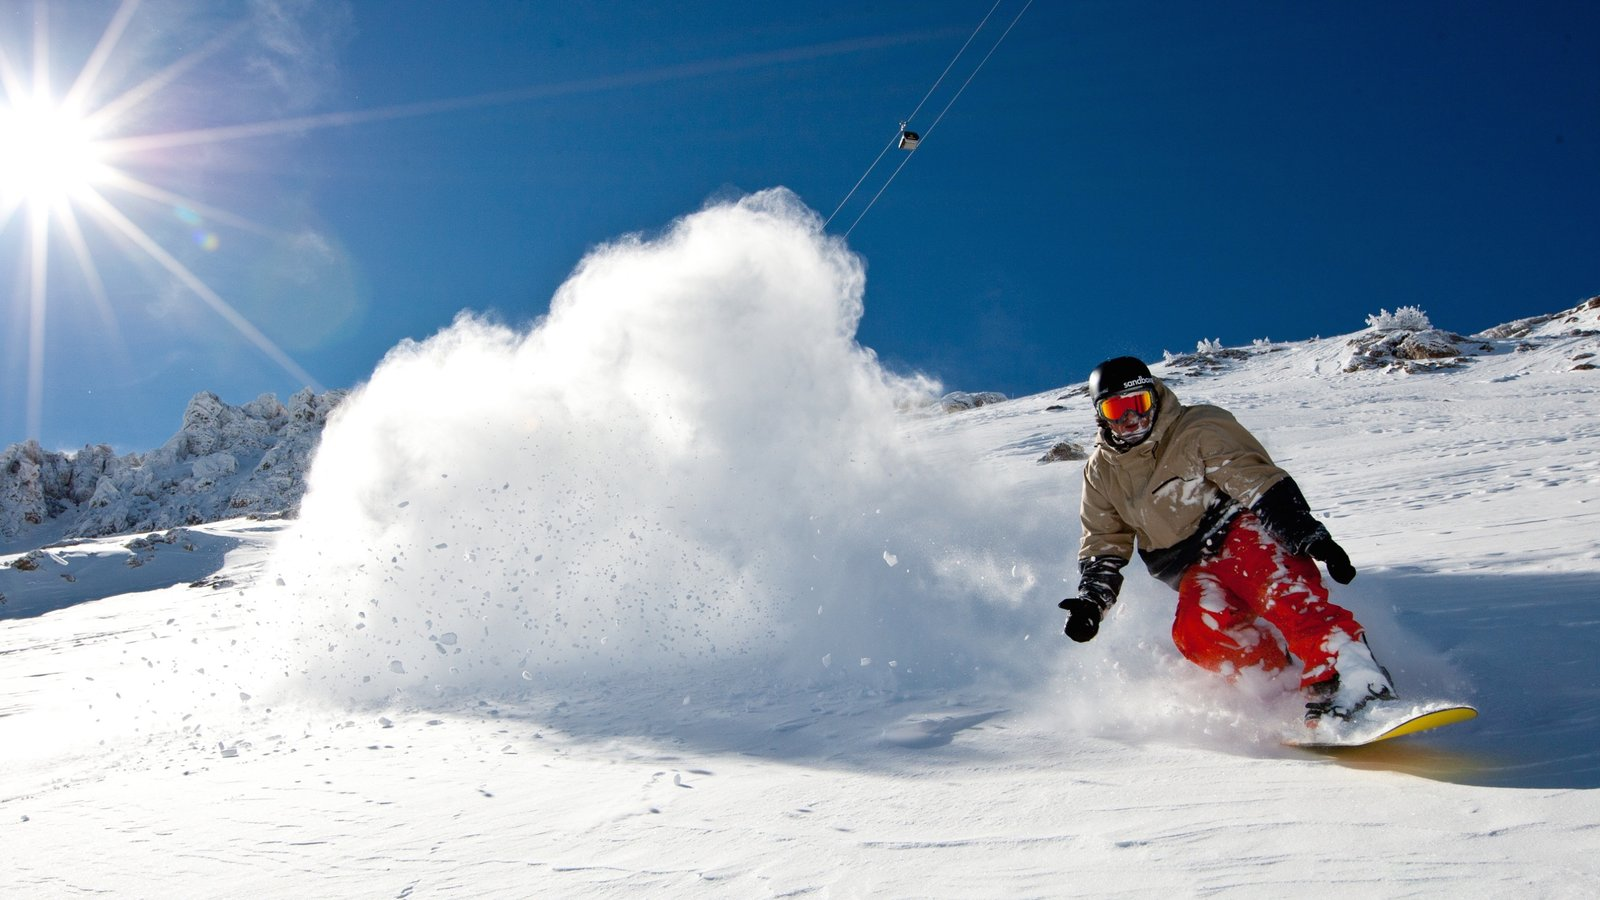 snowboarding research Ski and snowboard shops and stores sic 5941 | naics 451110 the following guide to industry information, research, and analysis provides sources for industry trends and statistics, market research and analysis, financial ratios and salary surveys, and more.